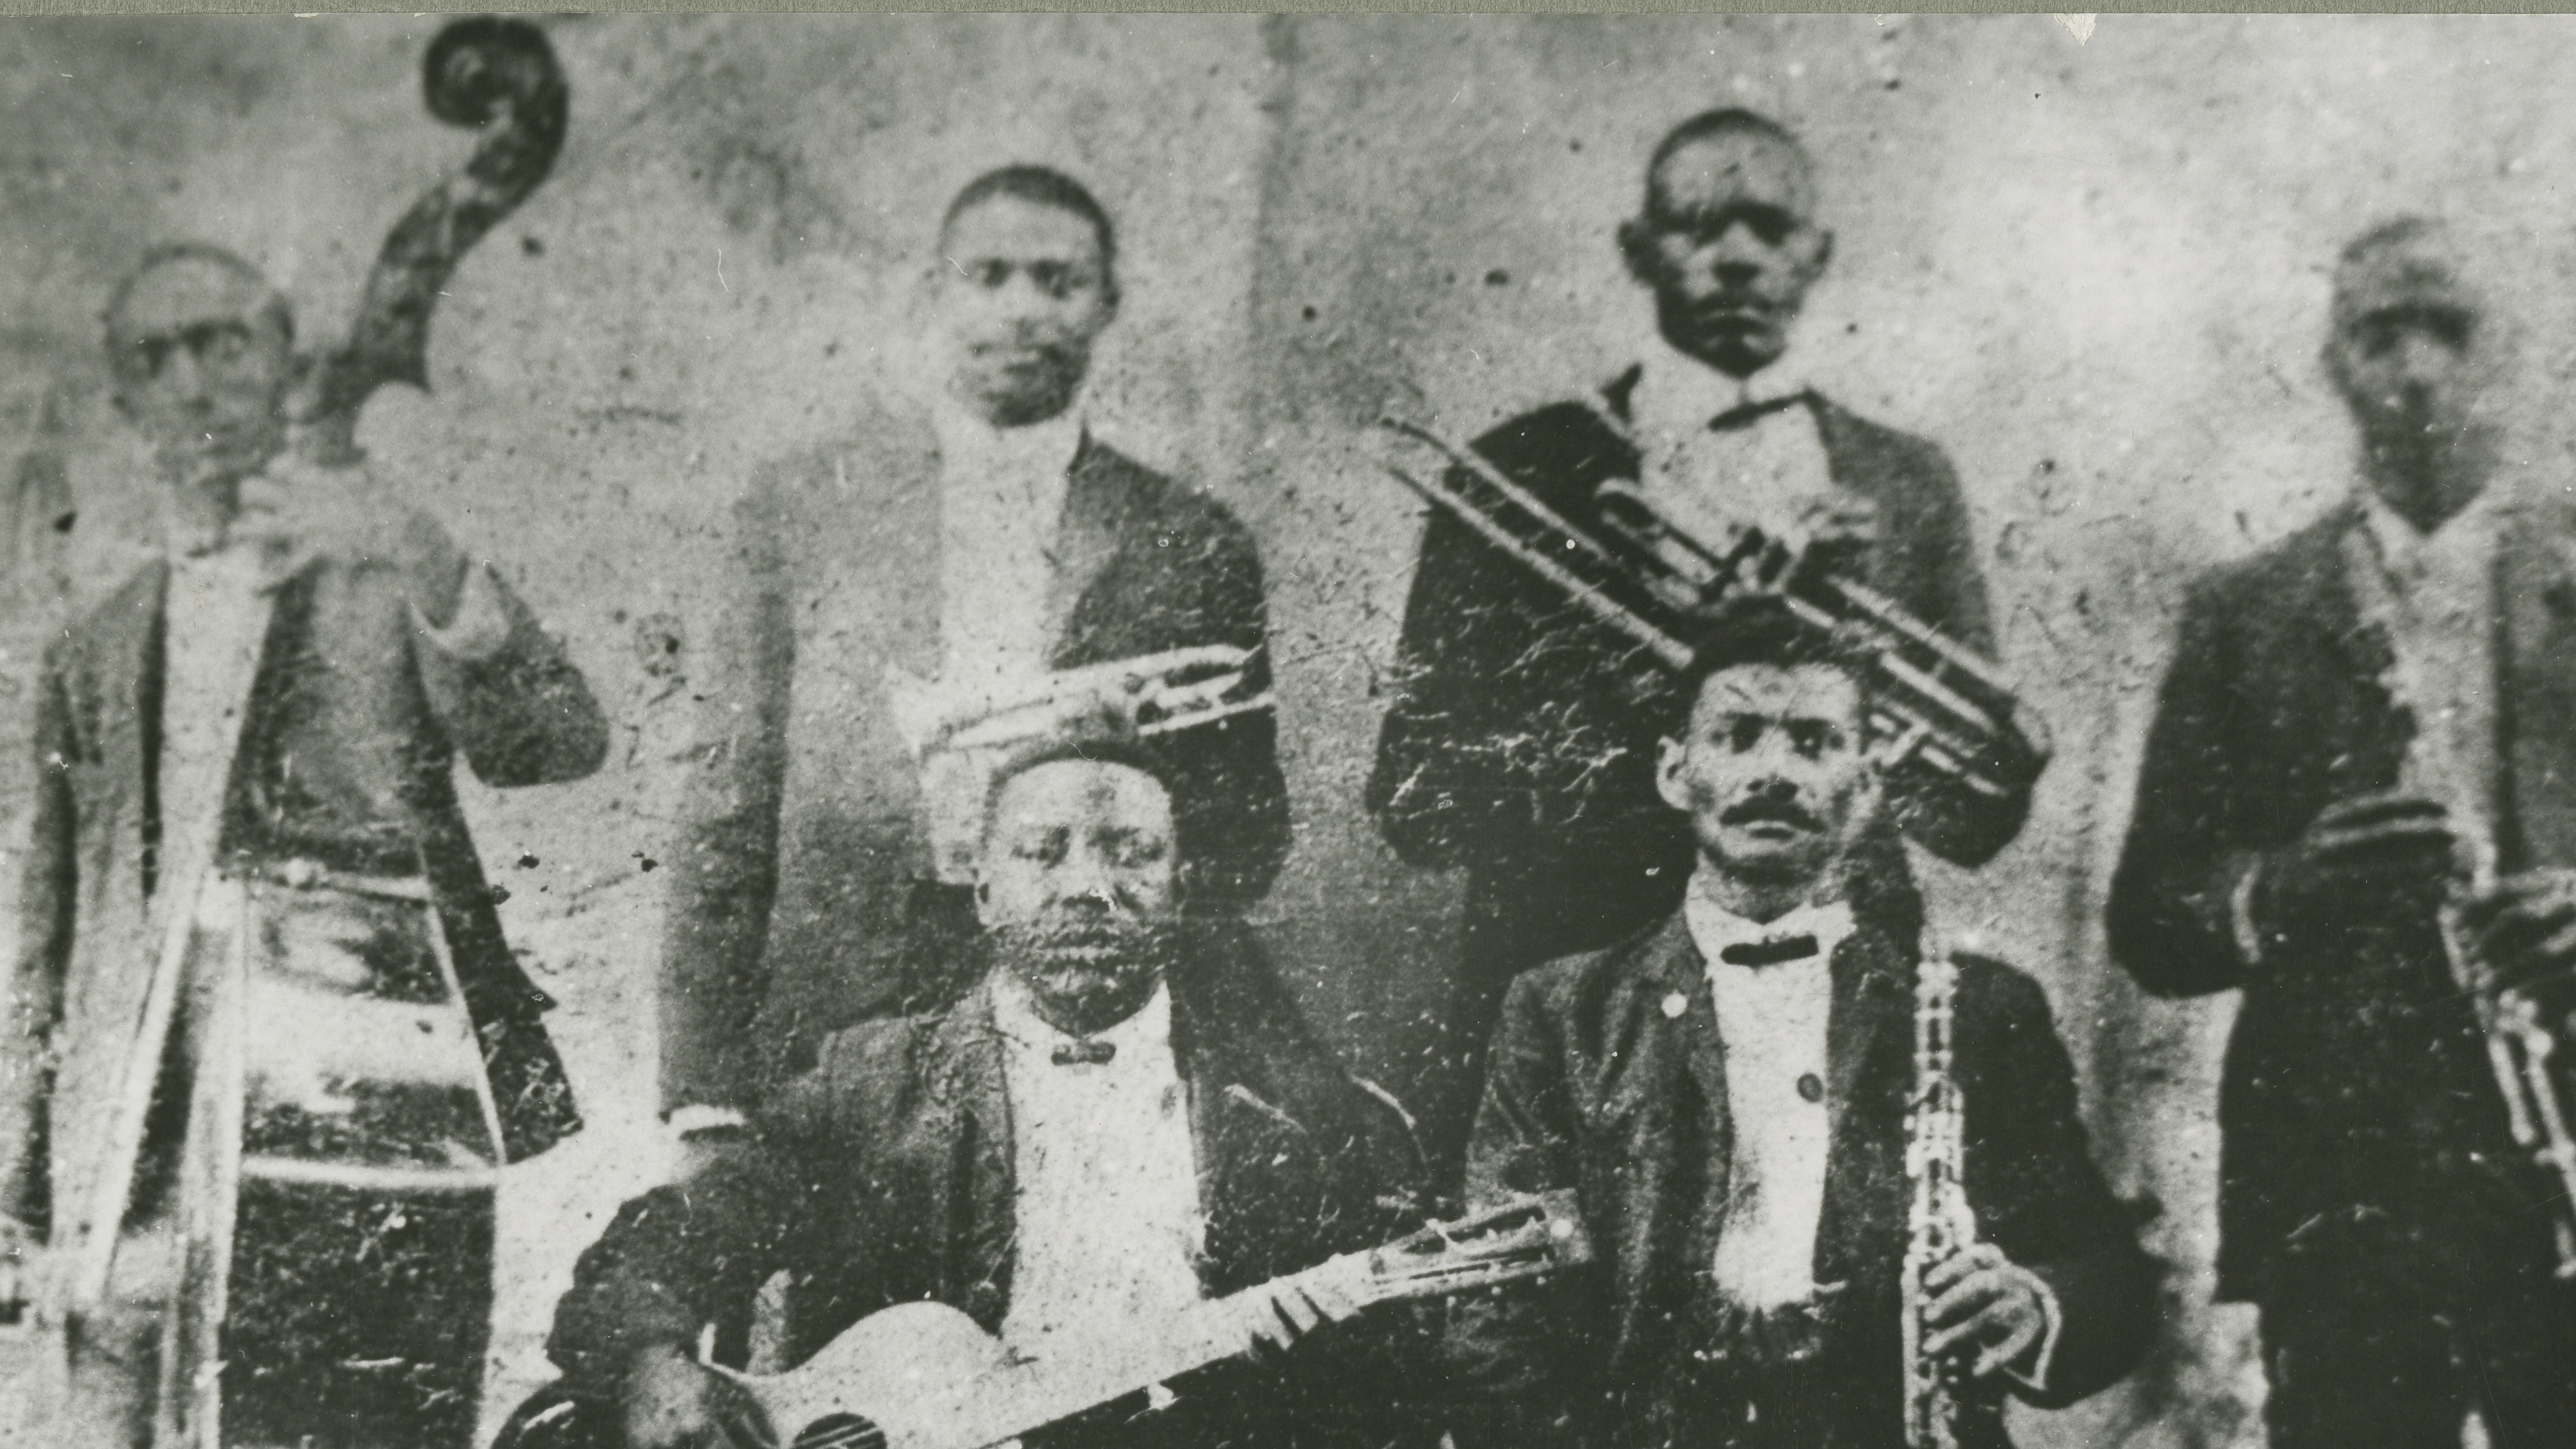 Preserving The House Of A Pioneering Musician — Who We Will Never Hear